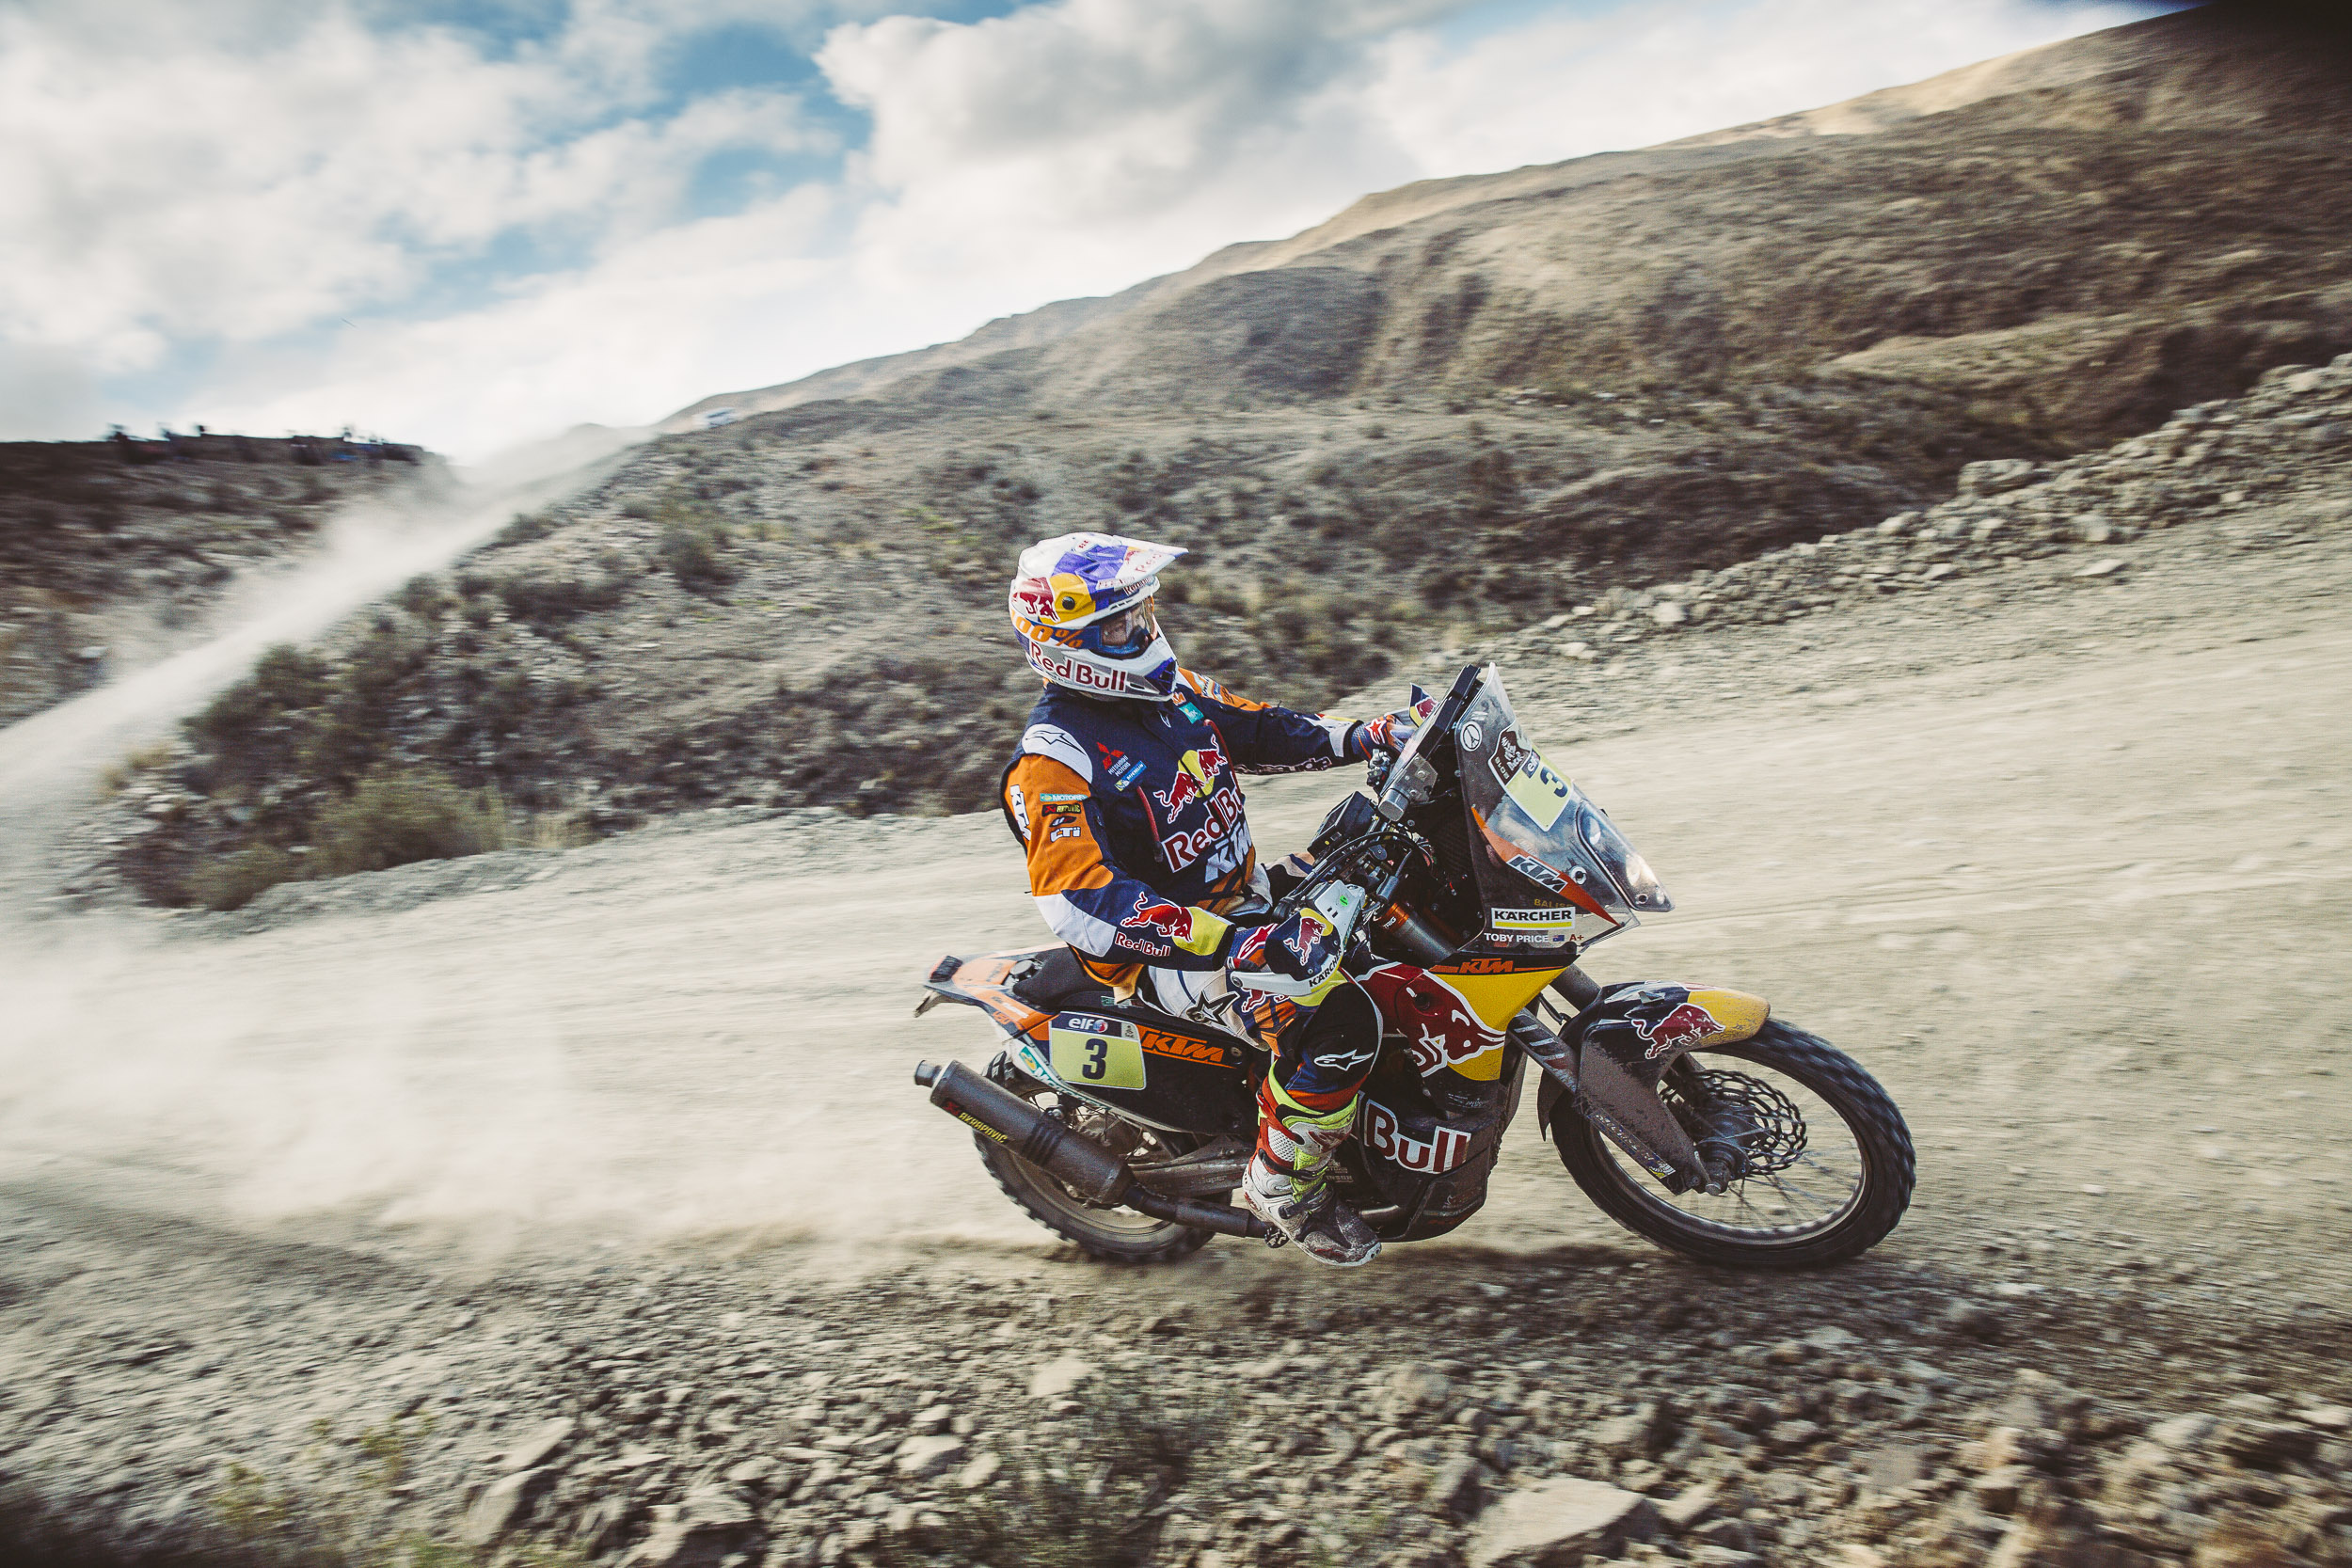 Toby Price (AUS) from Red Bull KTM Factory Team performs during stage 5 of Rally Dakar 2016 from Jujuy, Argentina to Uyuni, Bolivia on January 7, 2016.